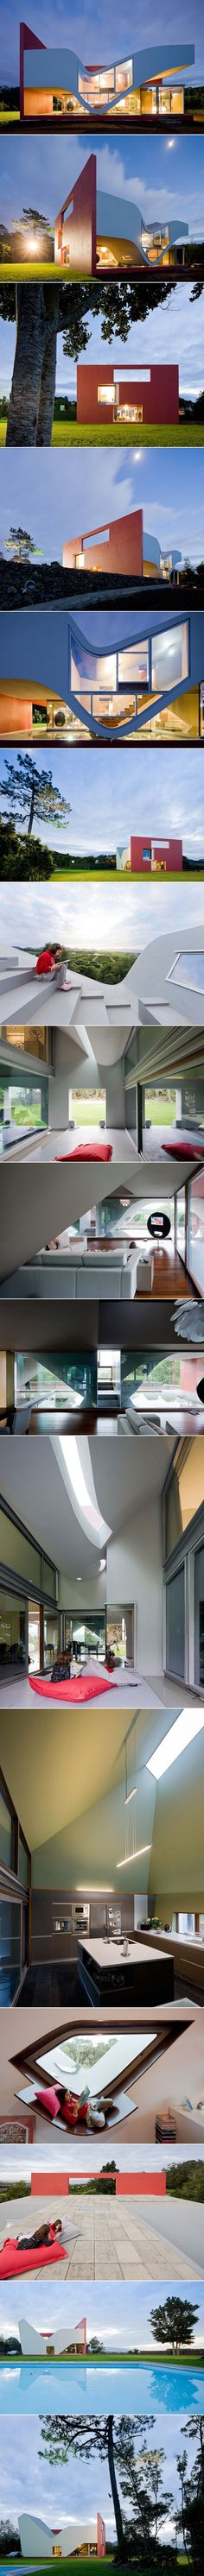 House on the Flight of Birds by Bernardo Rodrigues